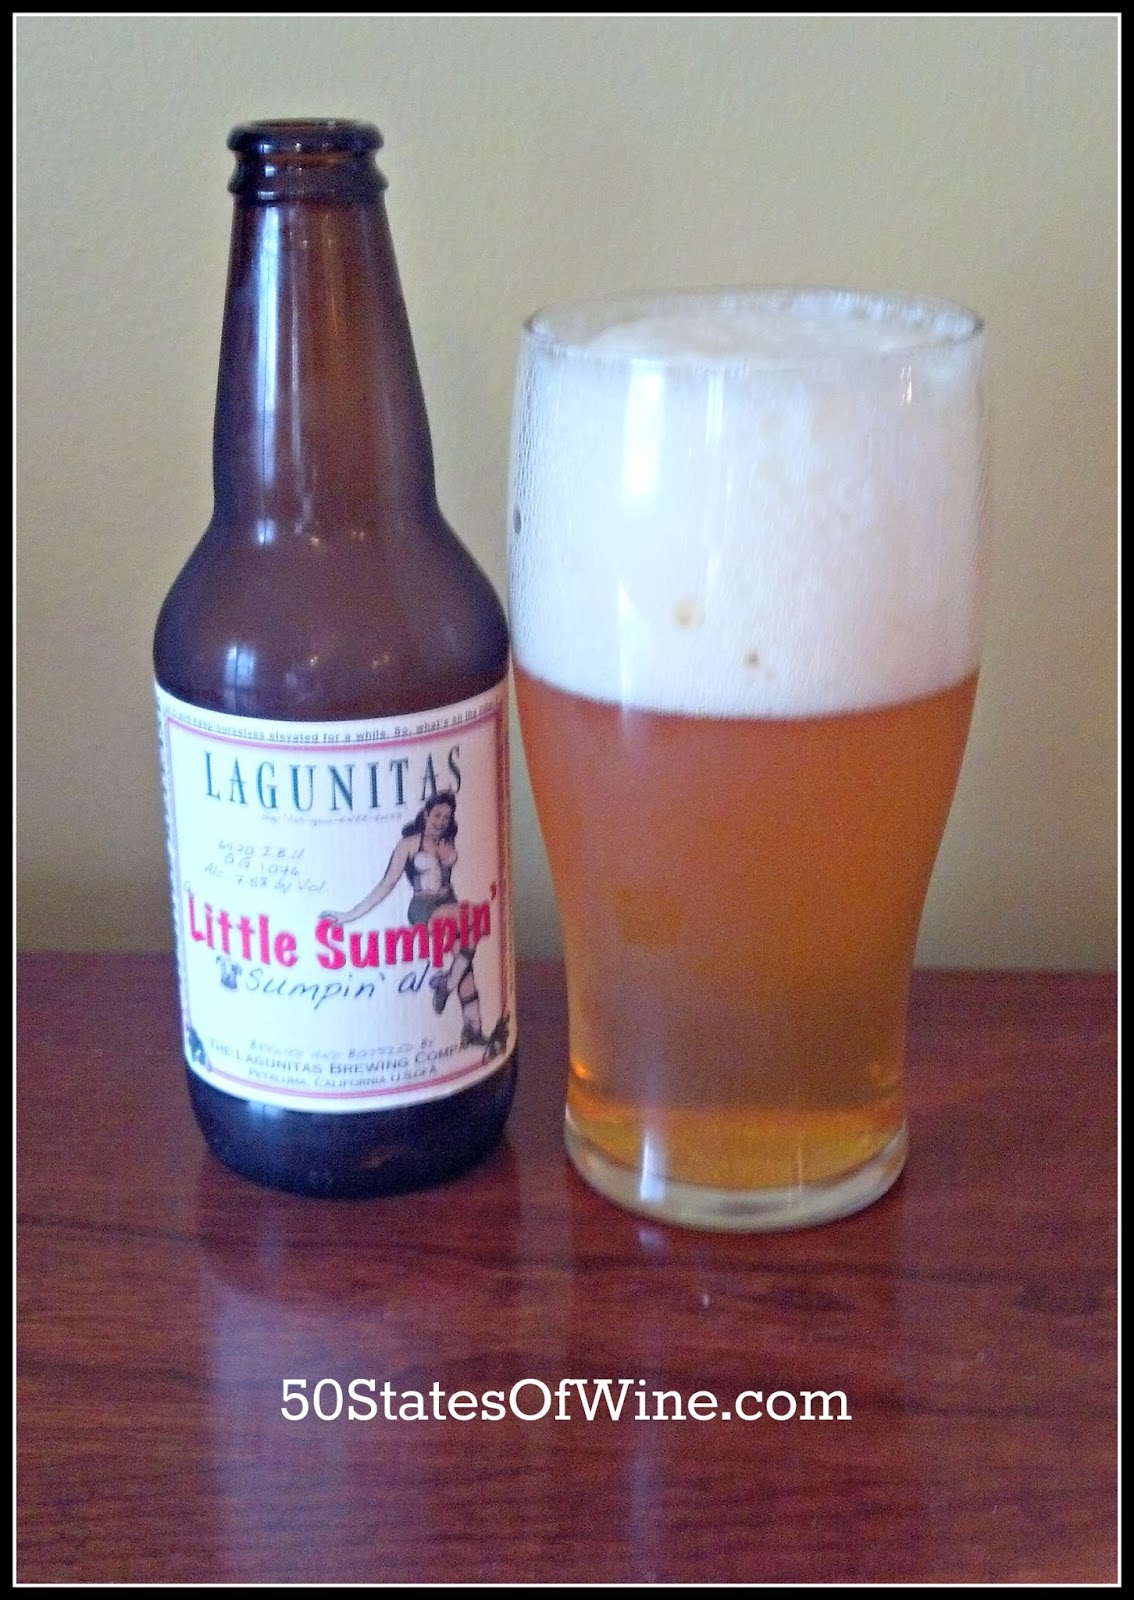 Lagunitas Brewing Company Little Sumpin' Sumpin'